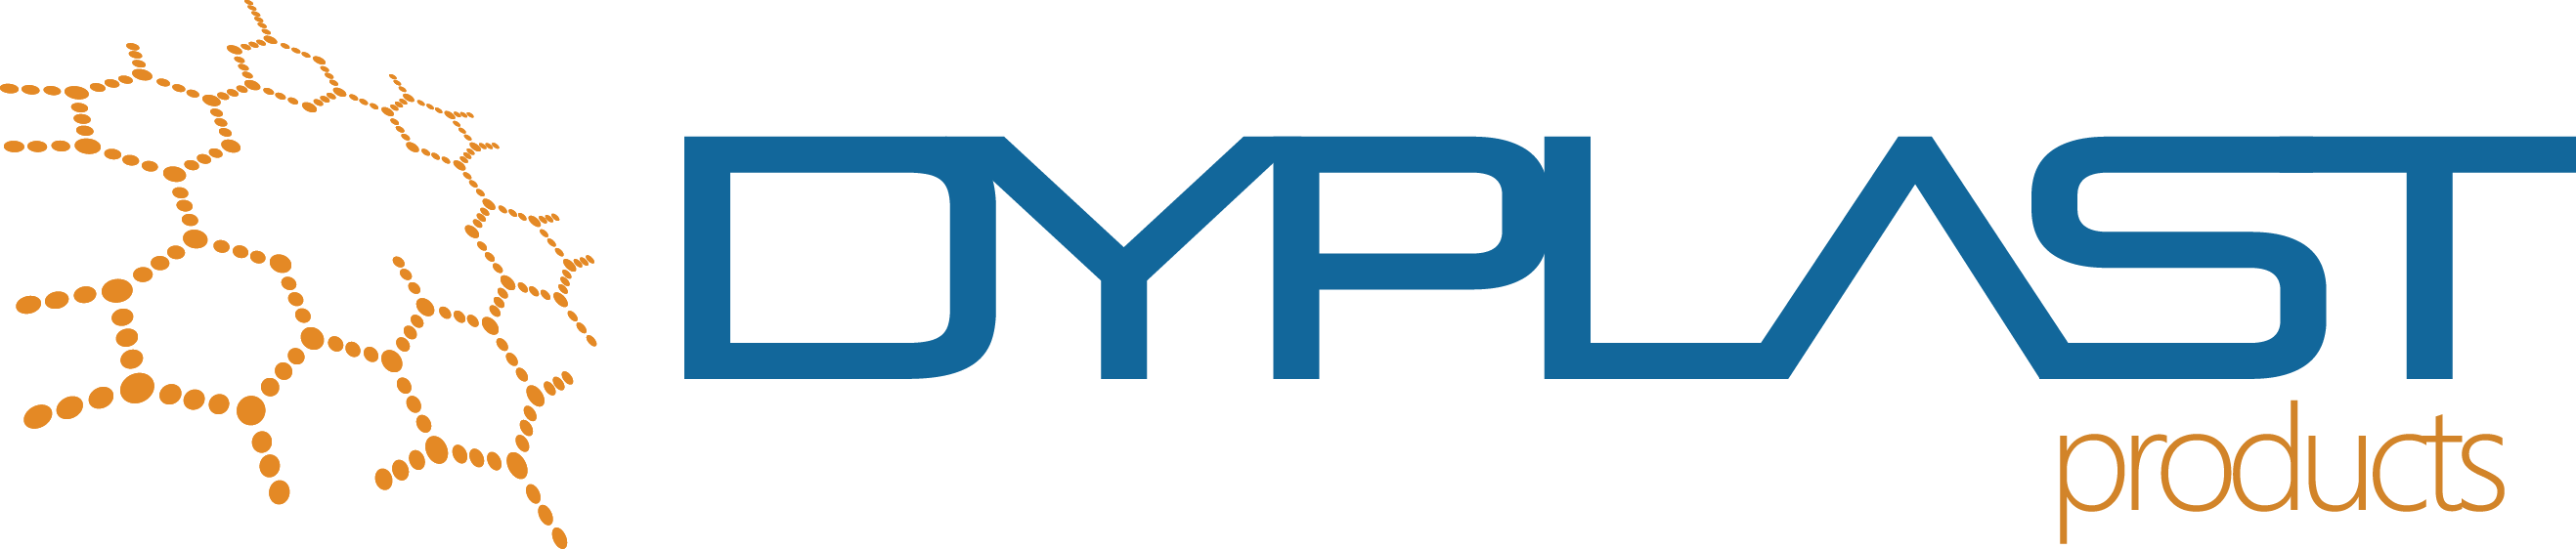 Dyplast Products Image